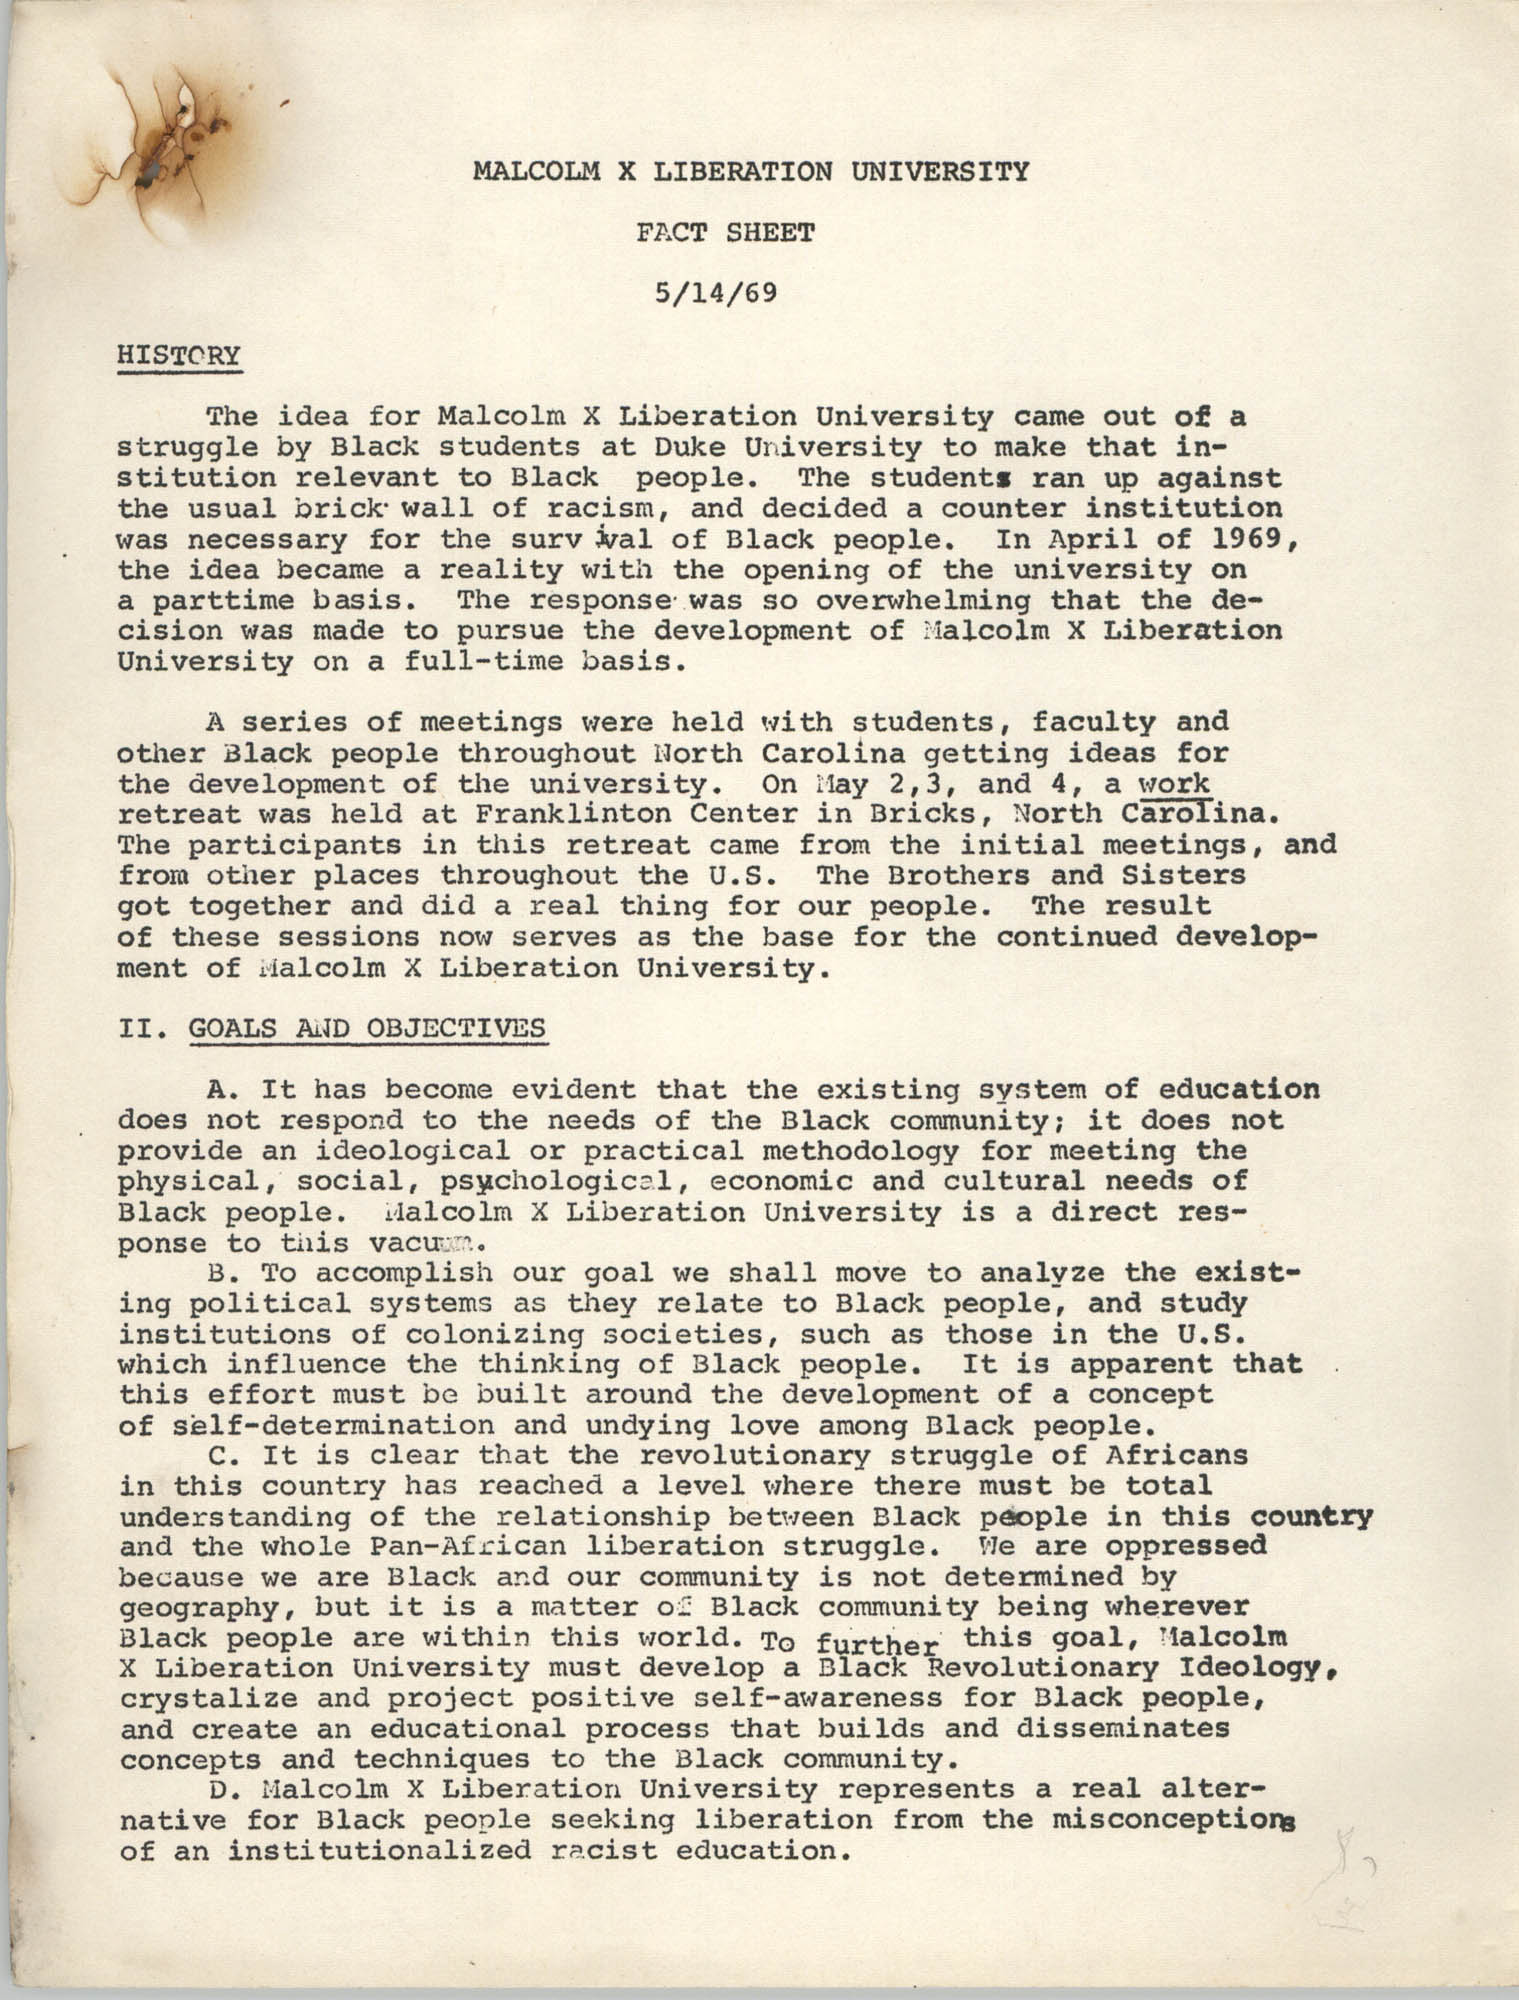 Malcolm X Liberation University Fact Sheet